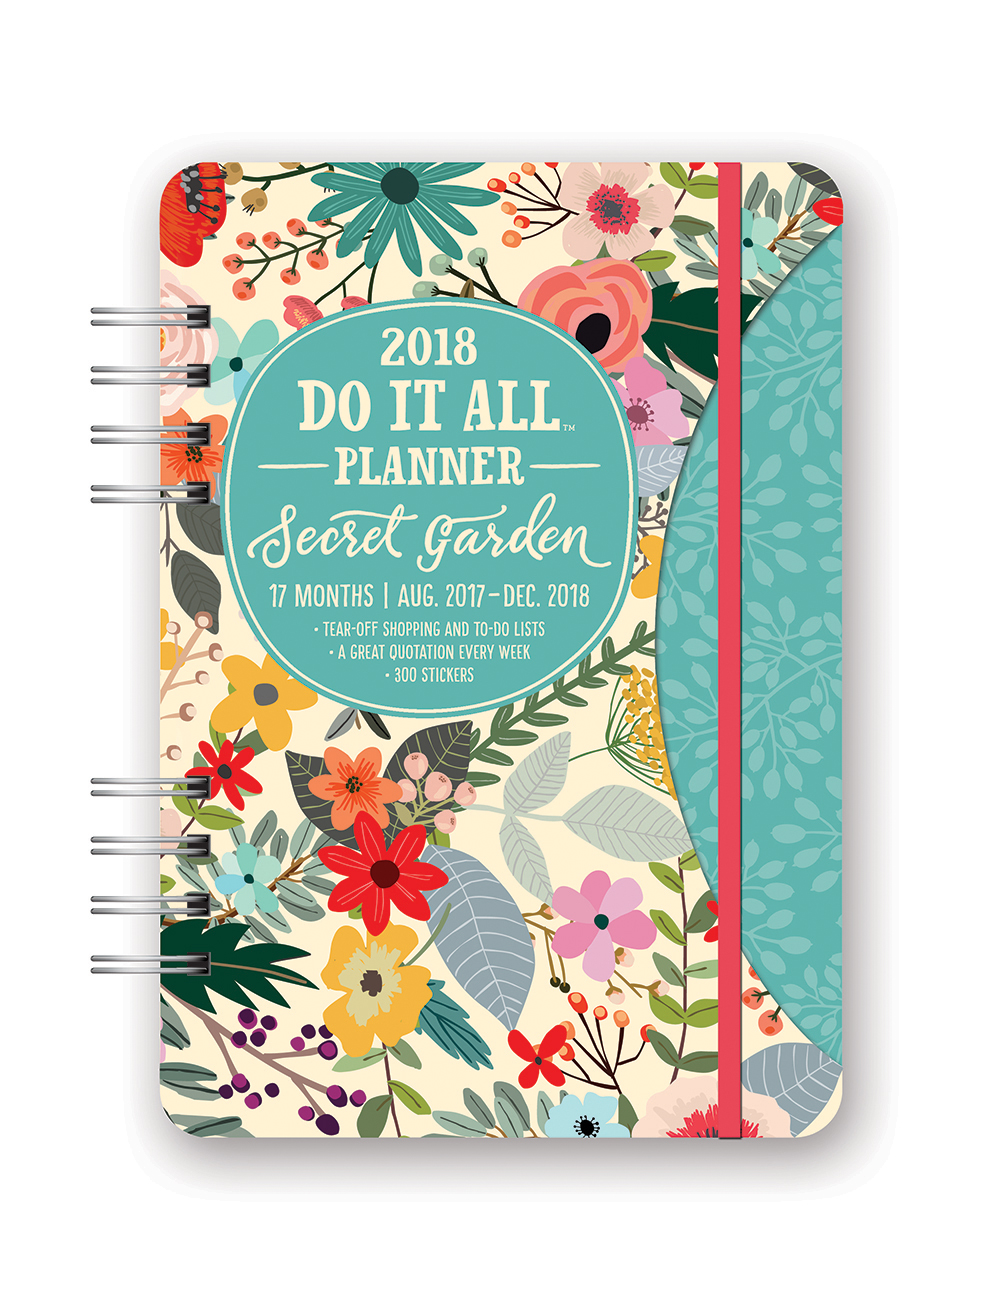 Secret Garden Do it All Planner 2018 by Orange Circle Studio 9781682581797